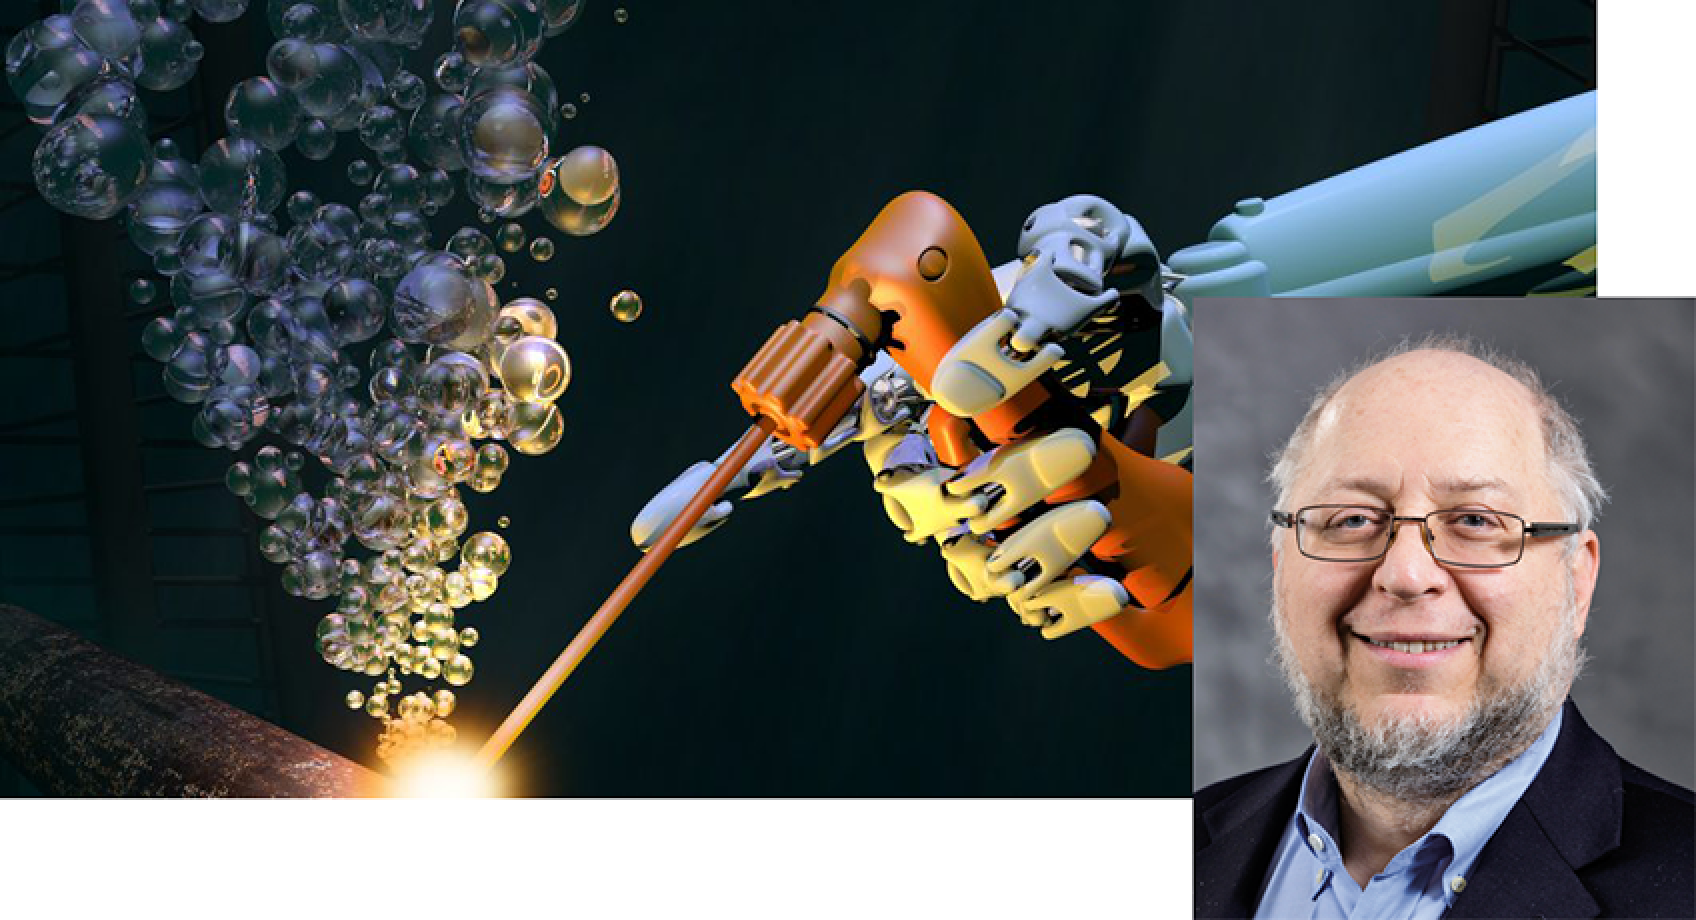 Professor Howard Chizeck profiled by Robotics Business Review Banner